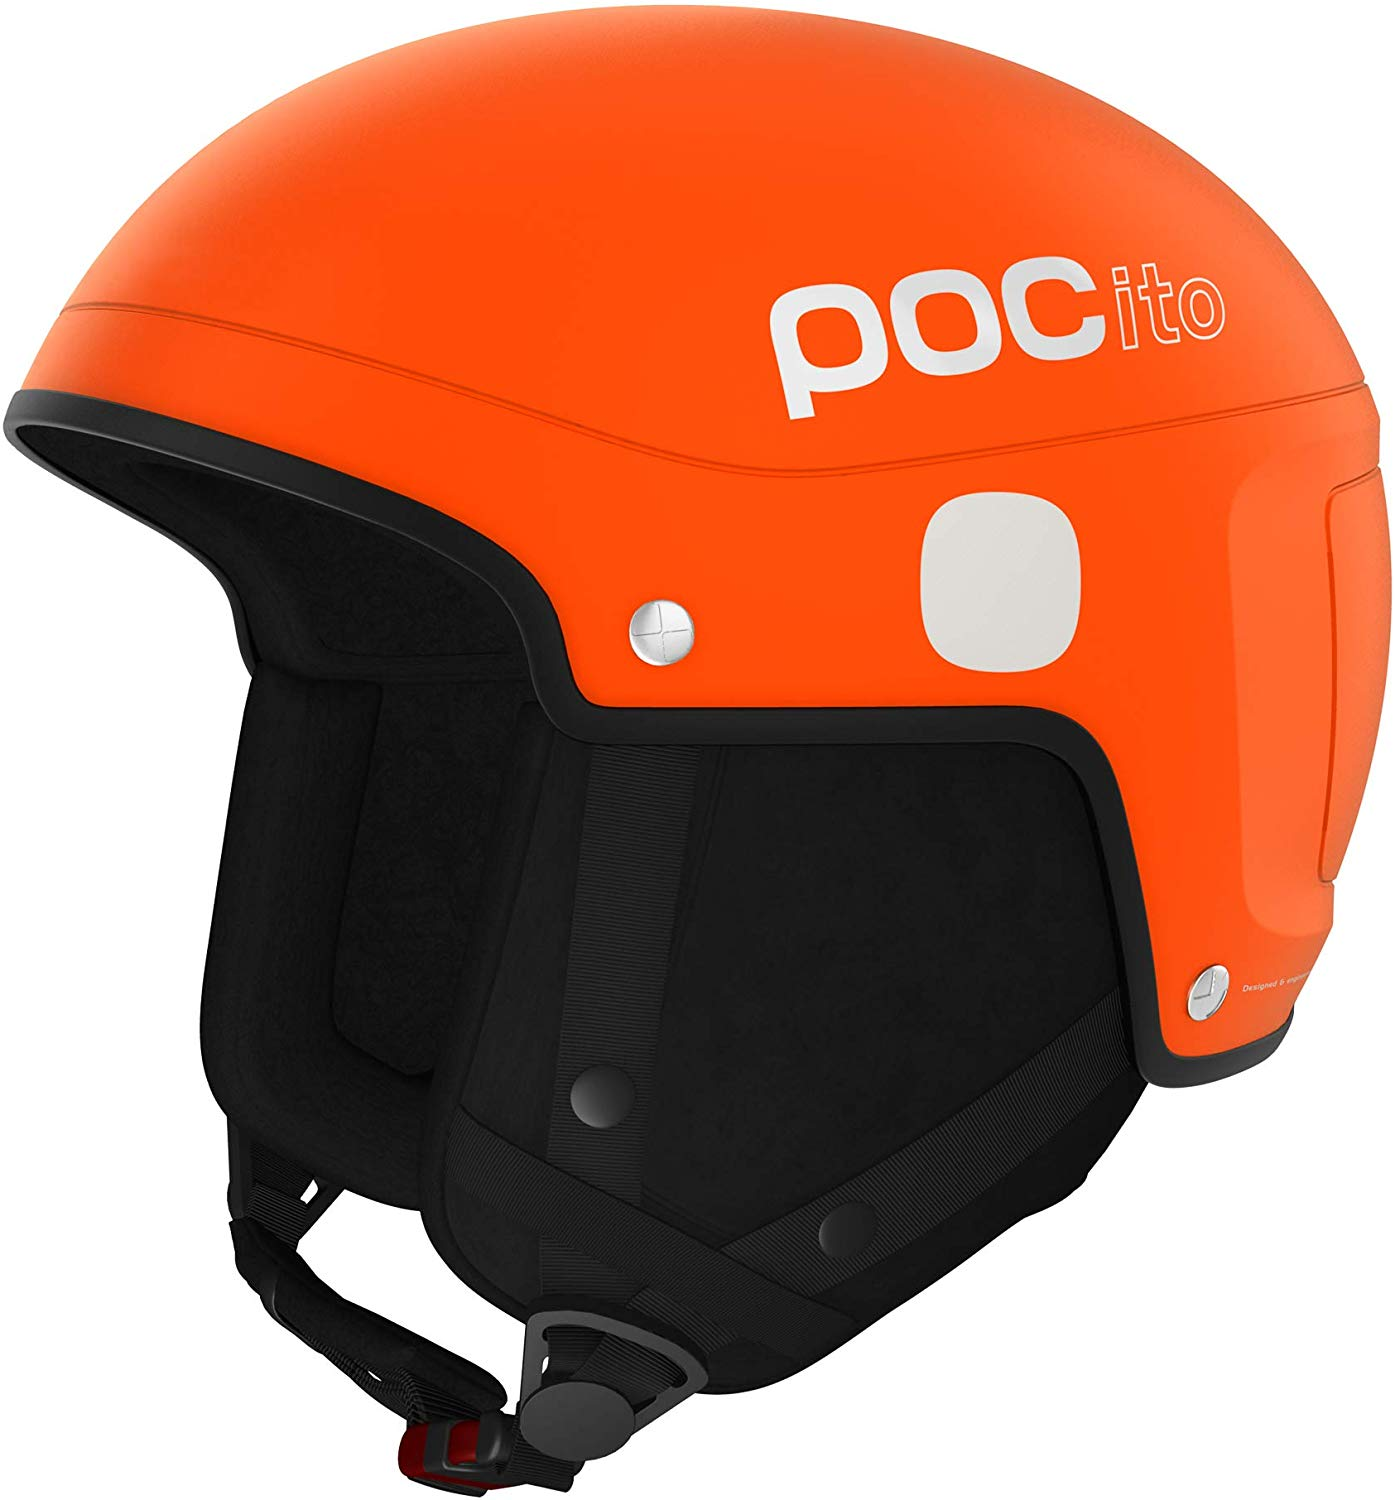 POC POCito Skull Light, Children's Helmet